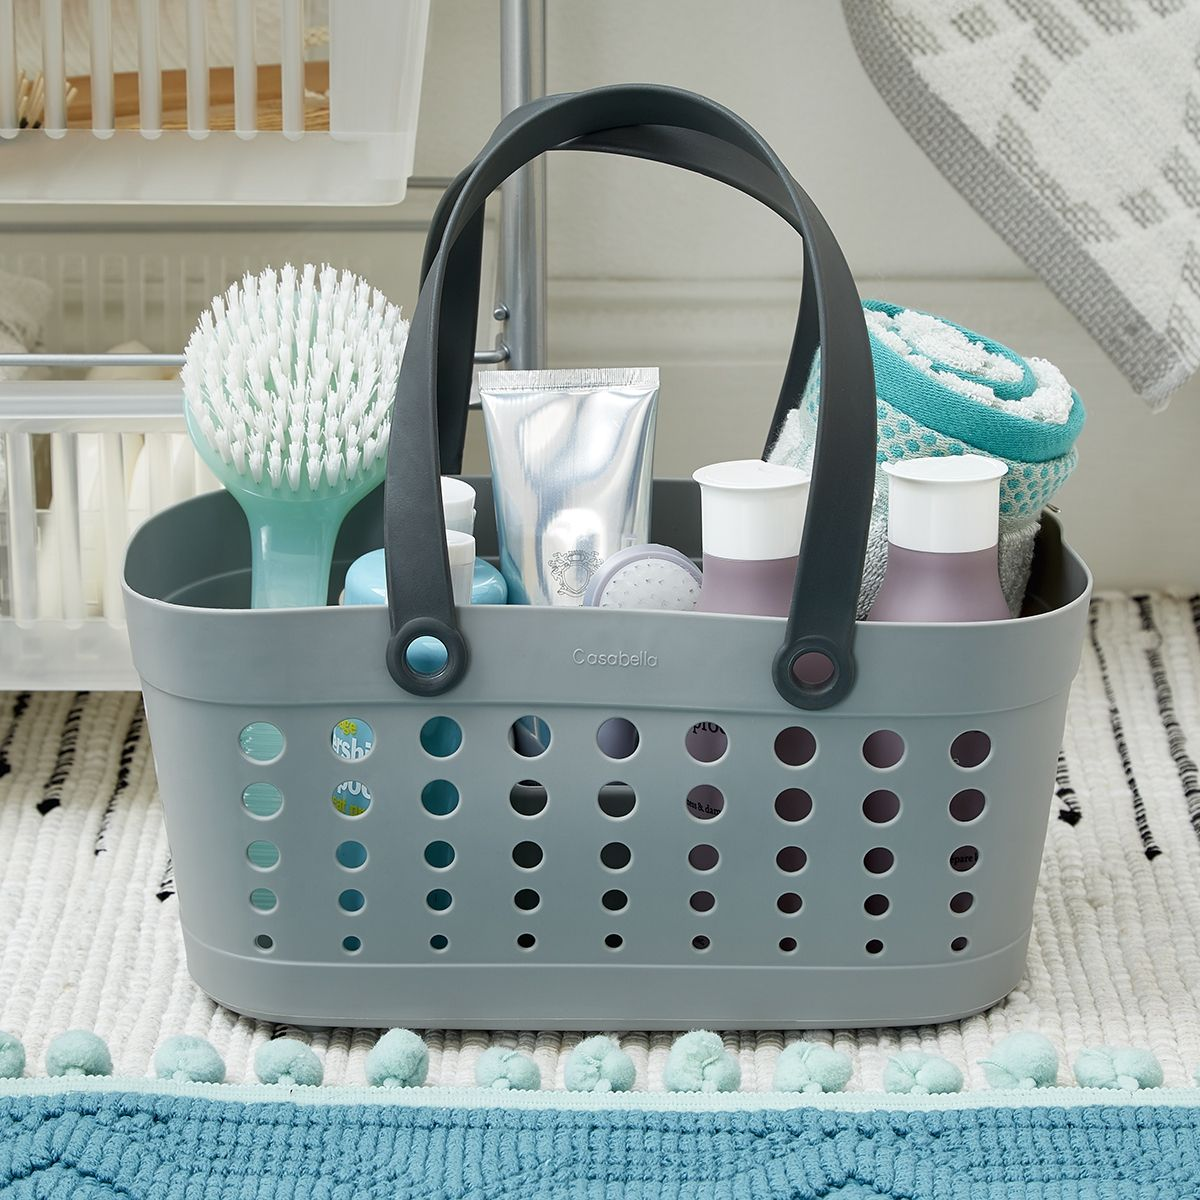 For A Quick Shower Or Relaxing Bath You Ll Have Everything At Your Fingertips With Our Bathroom Caddies And Ac Dorm Bathroom College Storage Dorm Shower Caddy